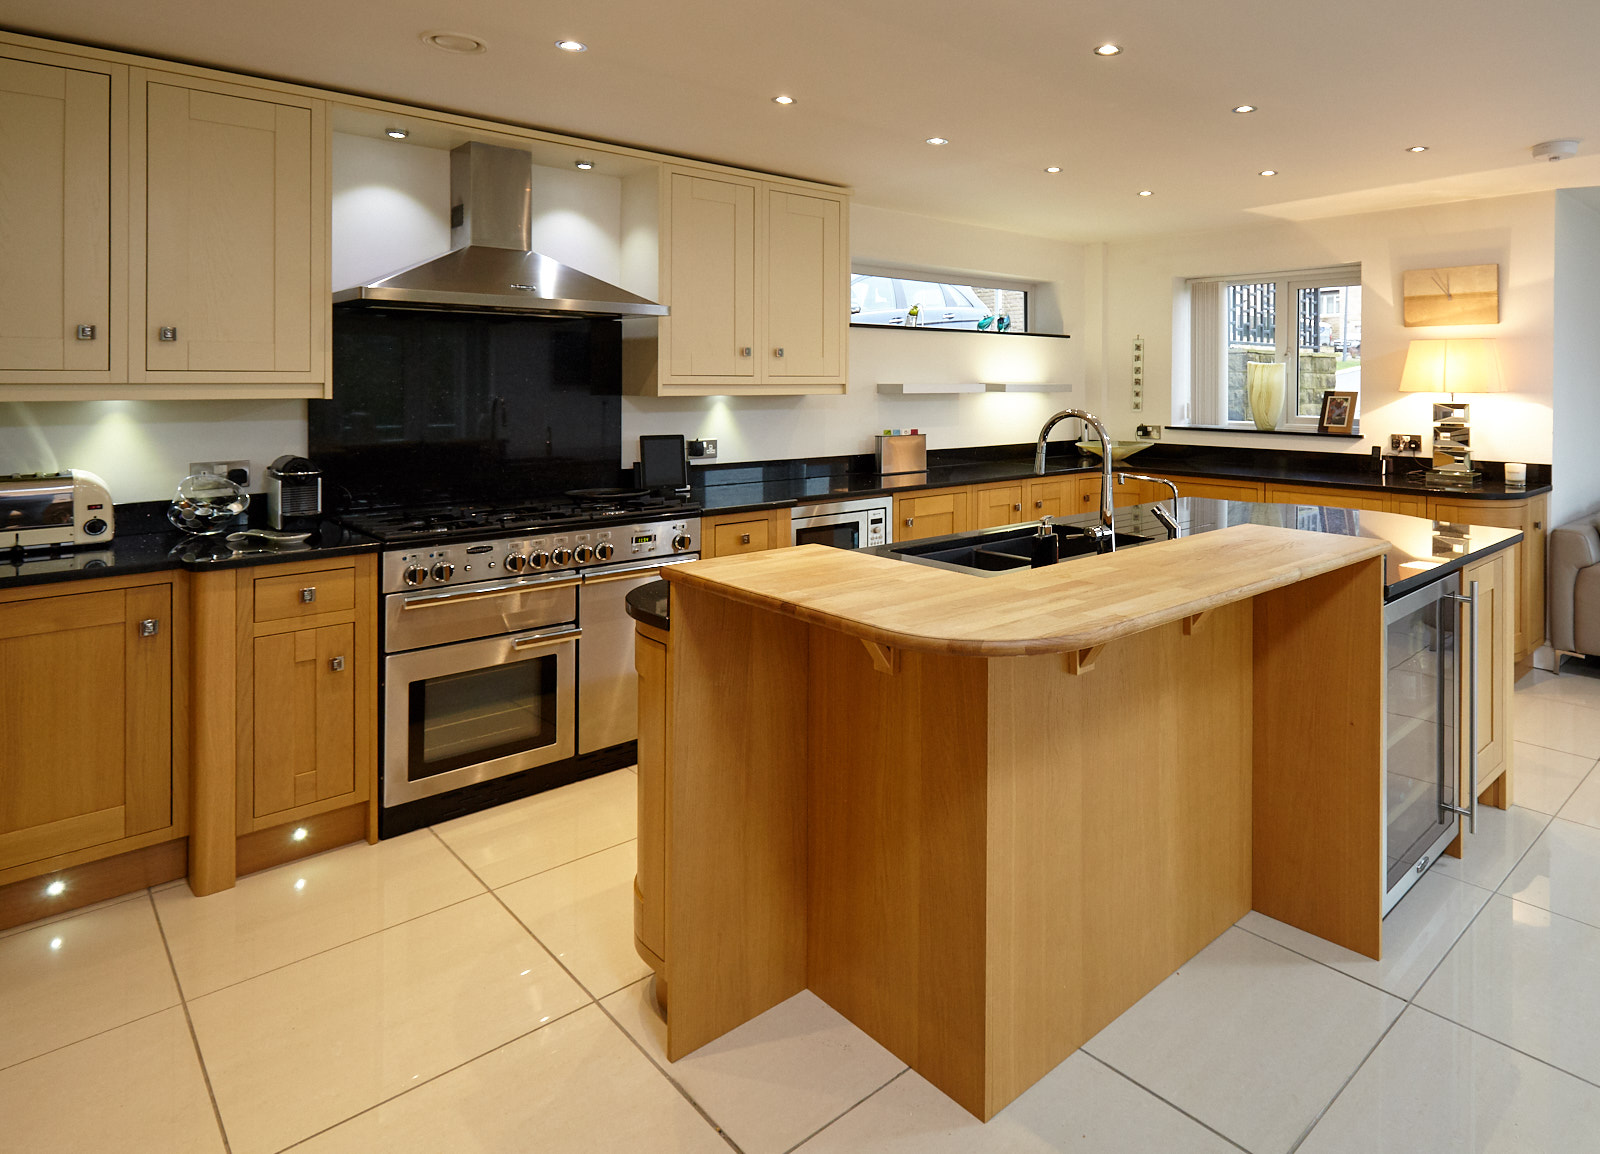 used kitchen islands large bespoke in frame family used kitchen with island breakfast bar greater manchester used 3794